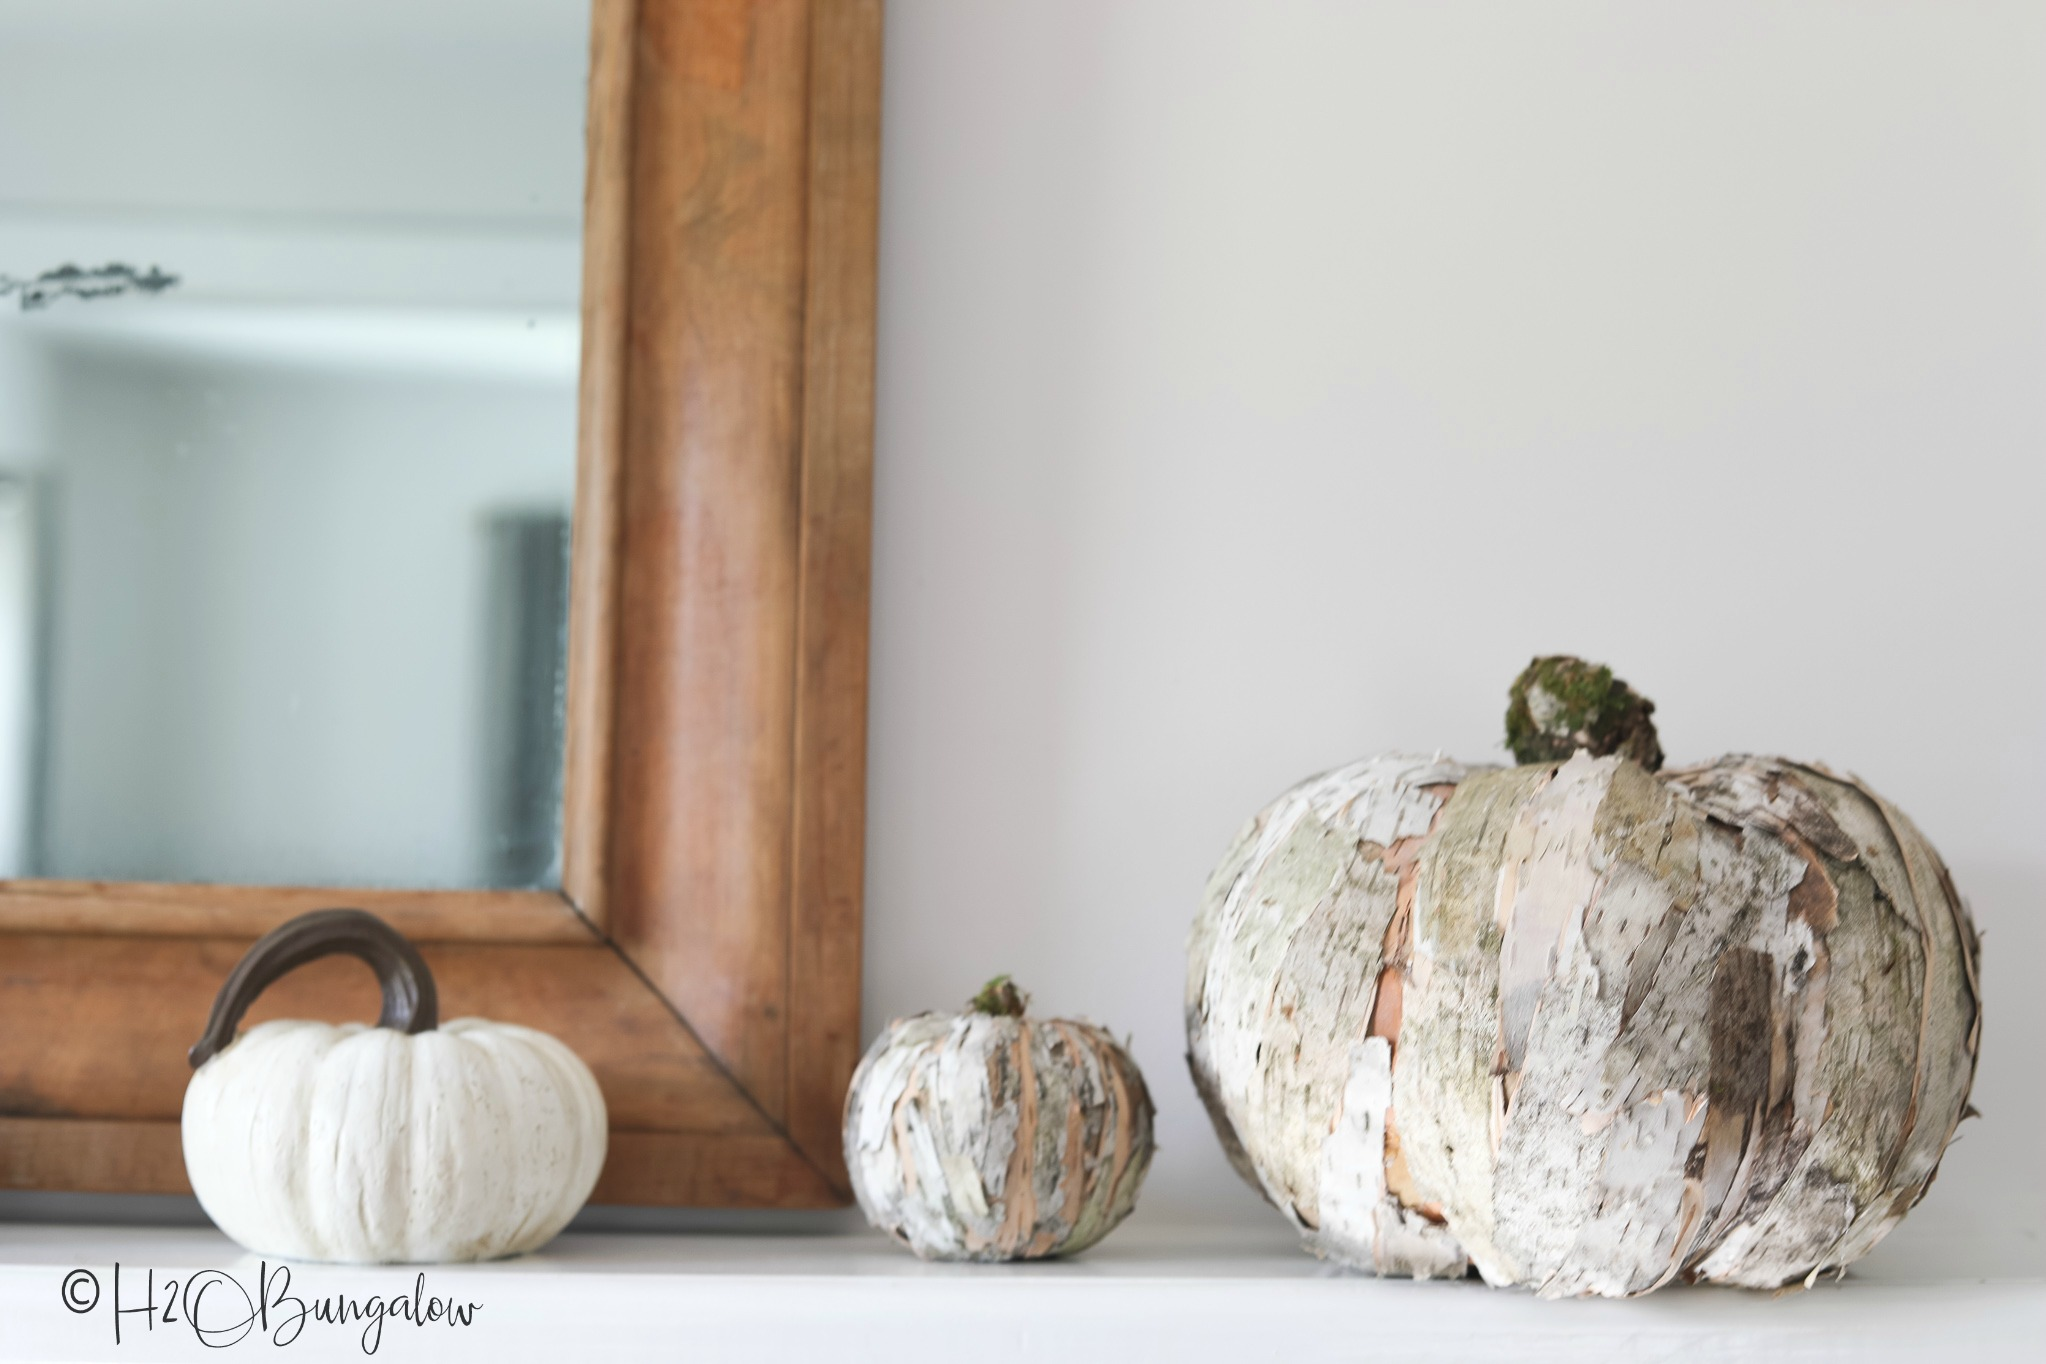 One large birch bark pumpkin and one small birch bark pumpkin sitting on console table with plain white pumpkin